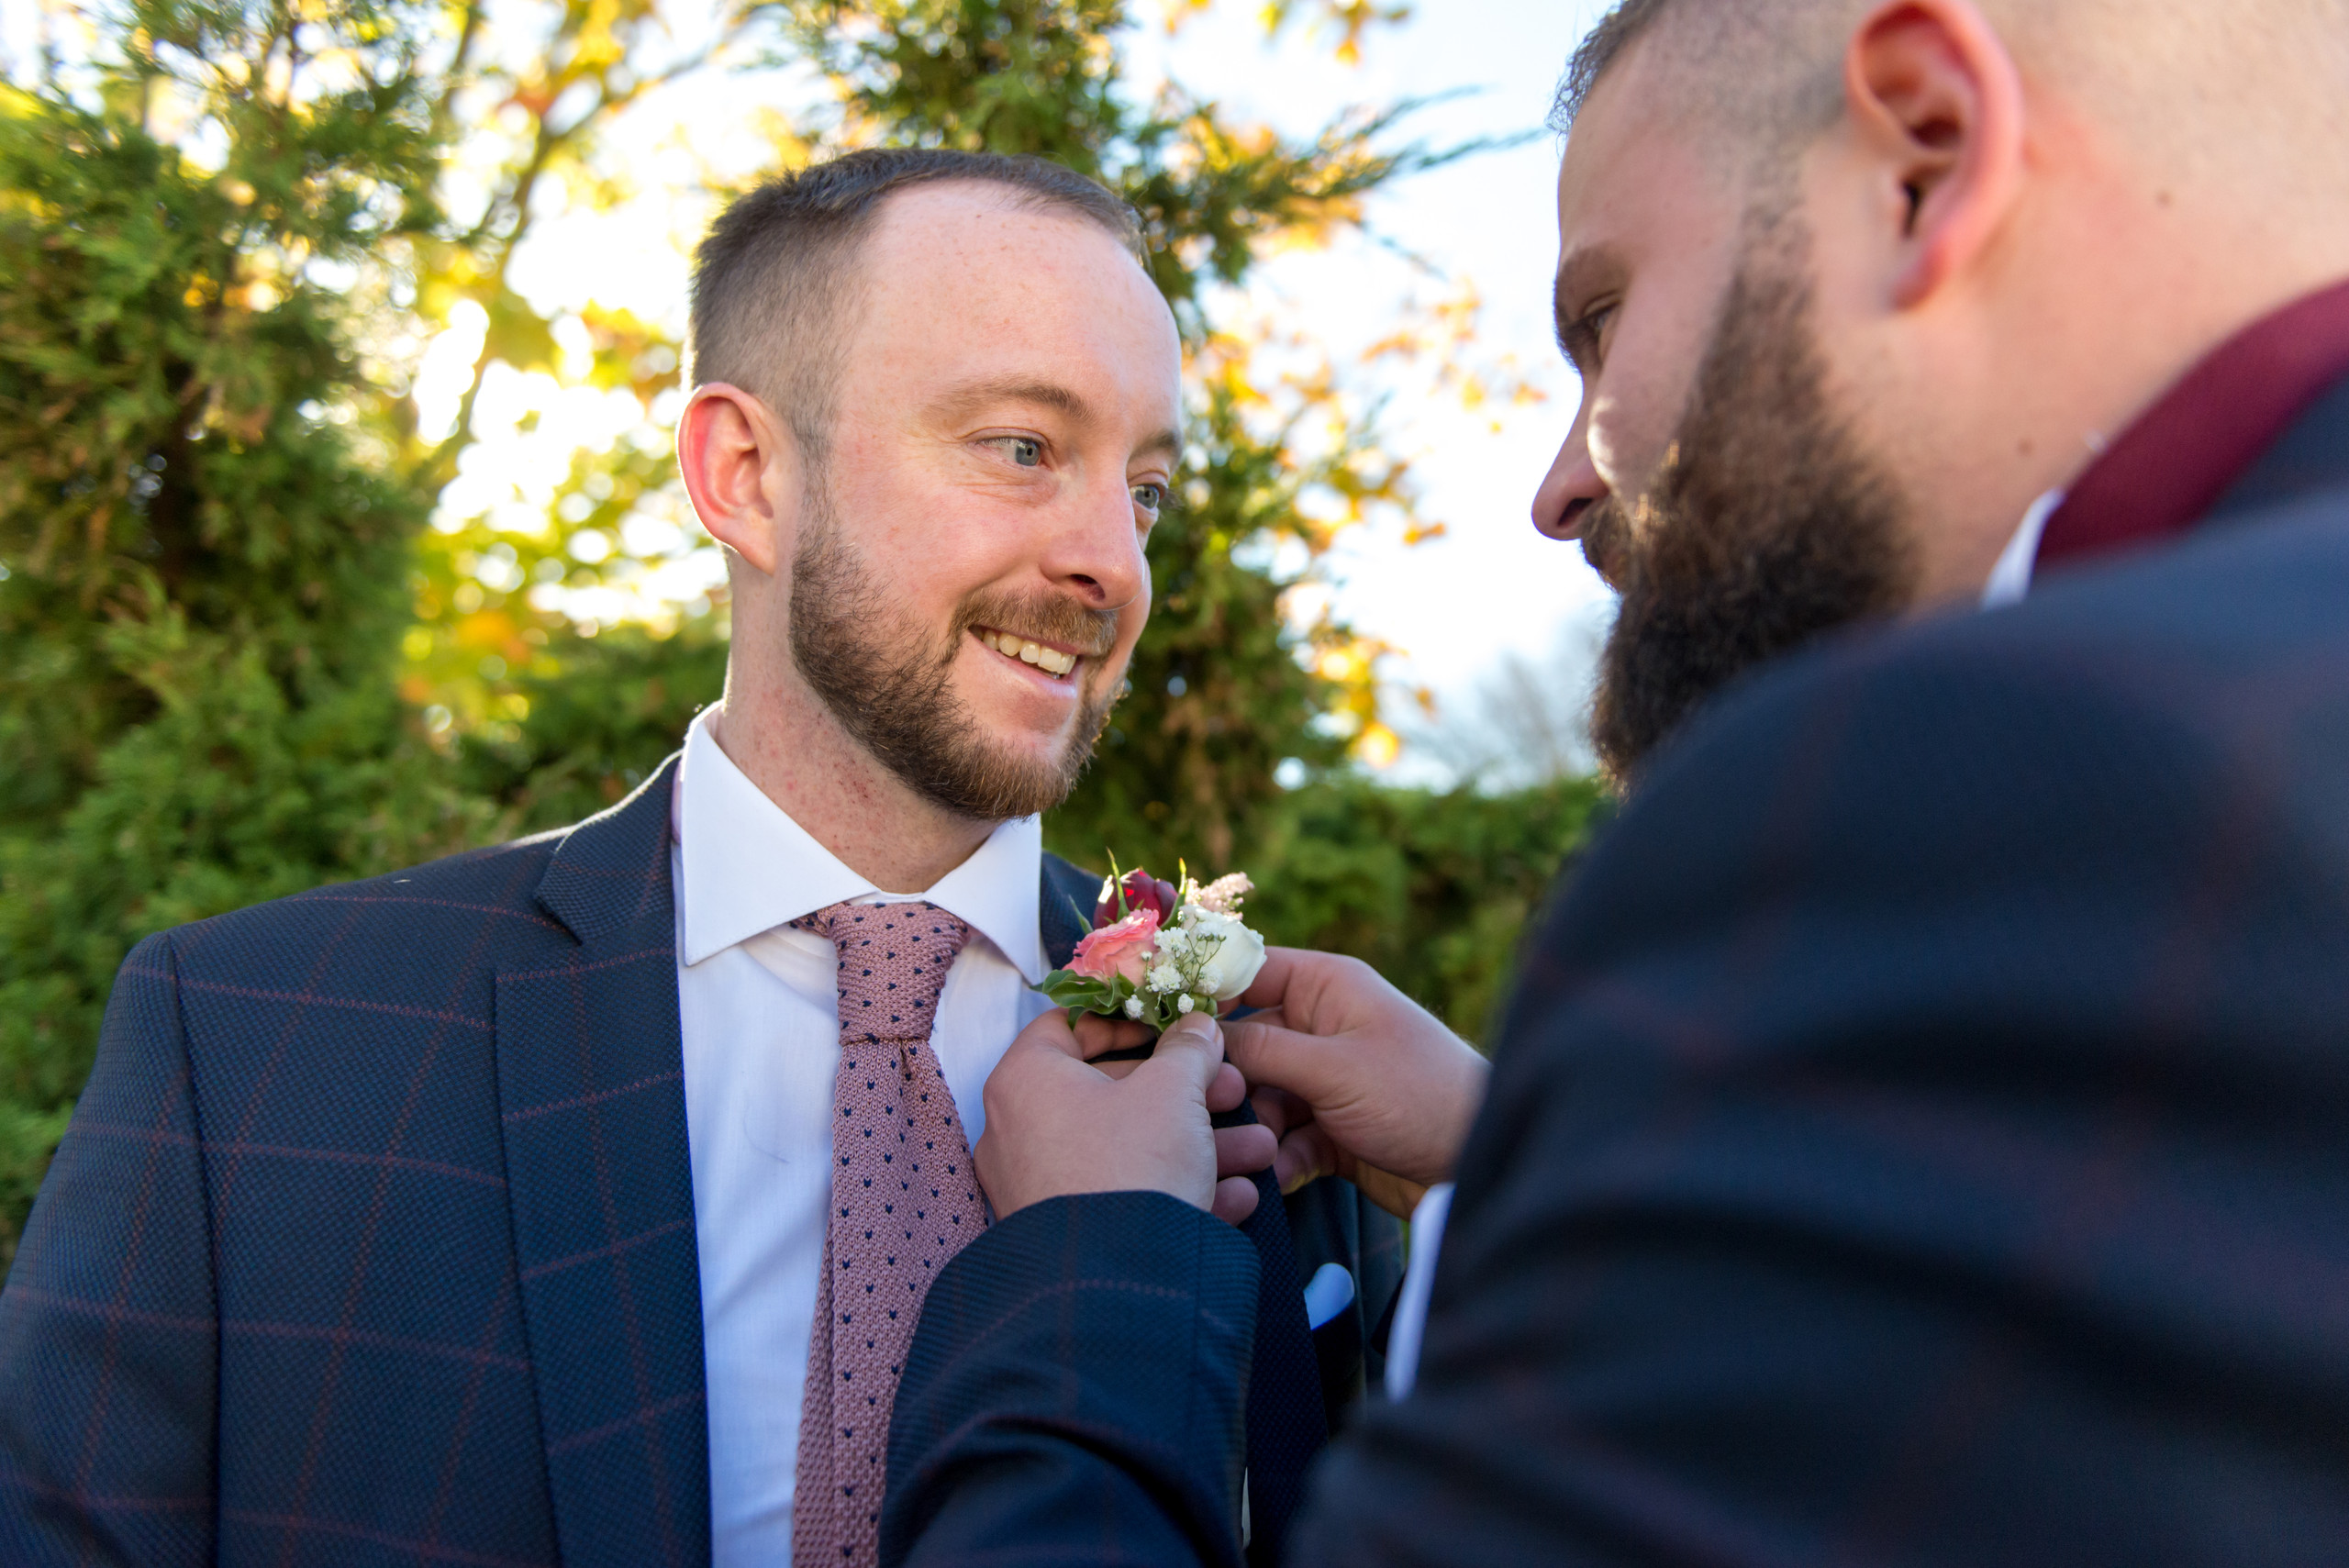 Groom in navy suit with best man putting on buttonhole flowers